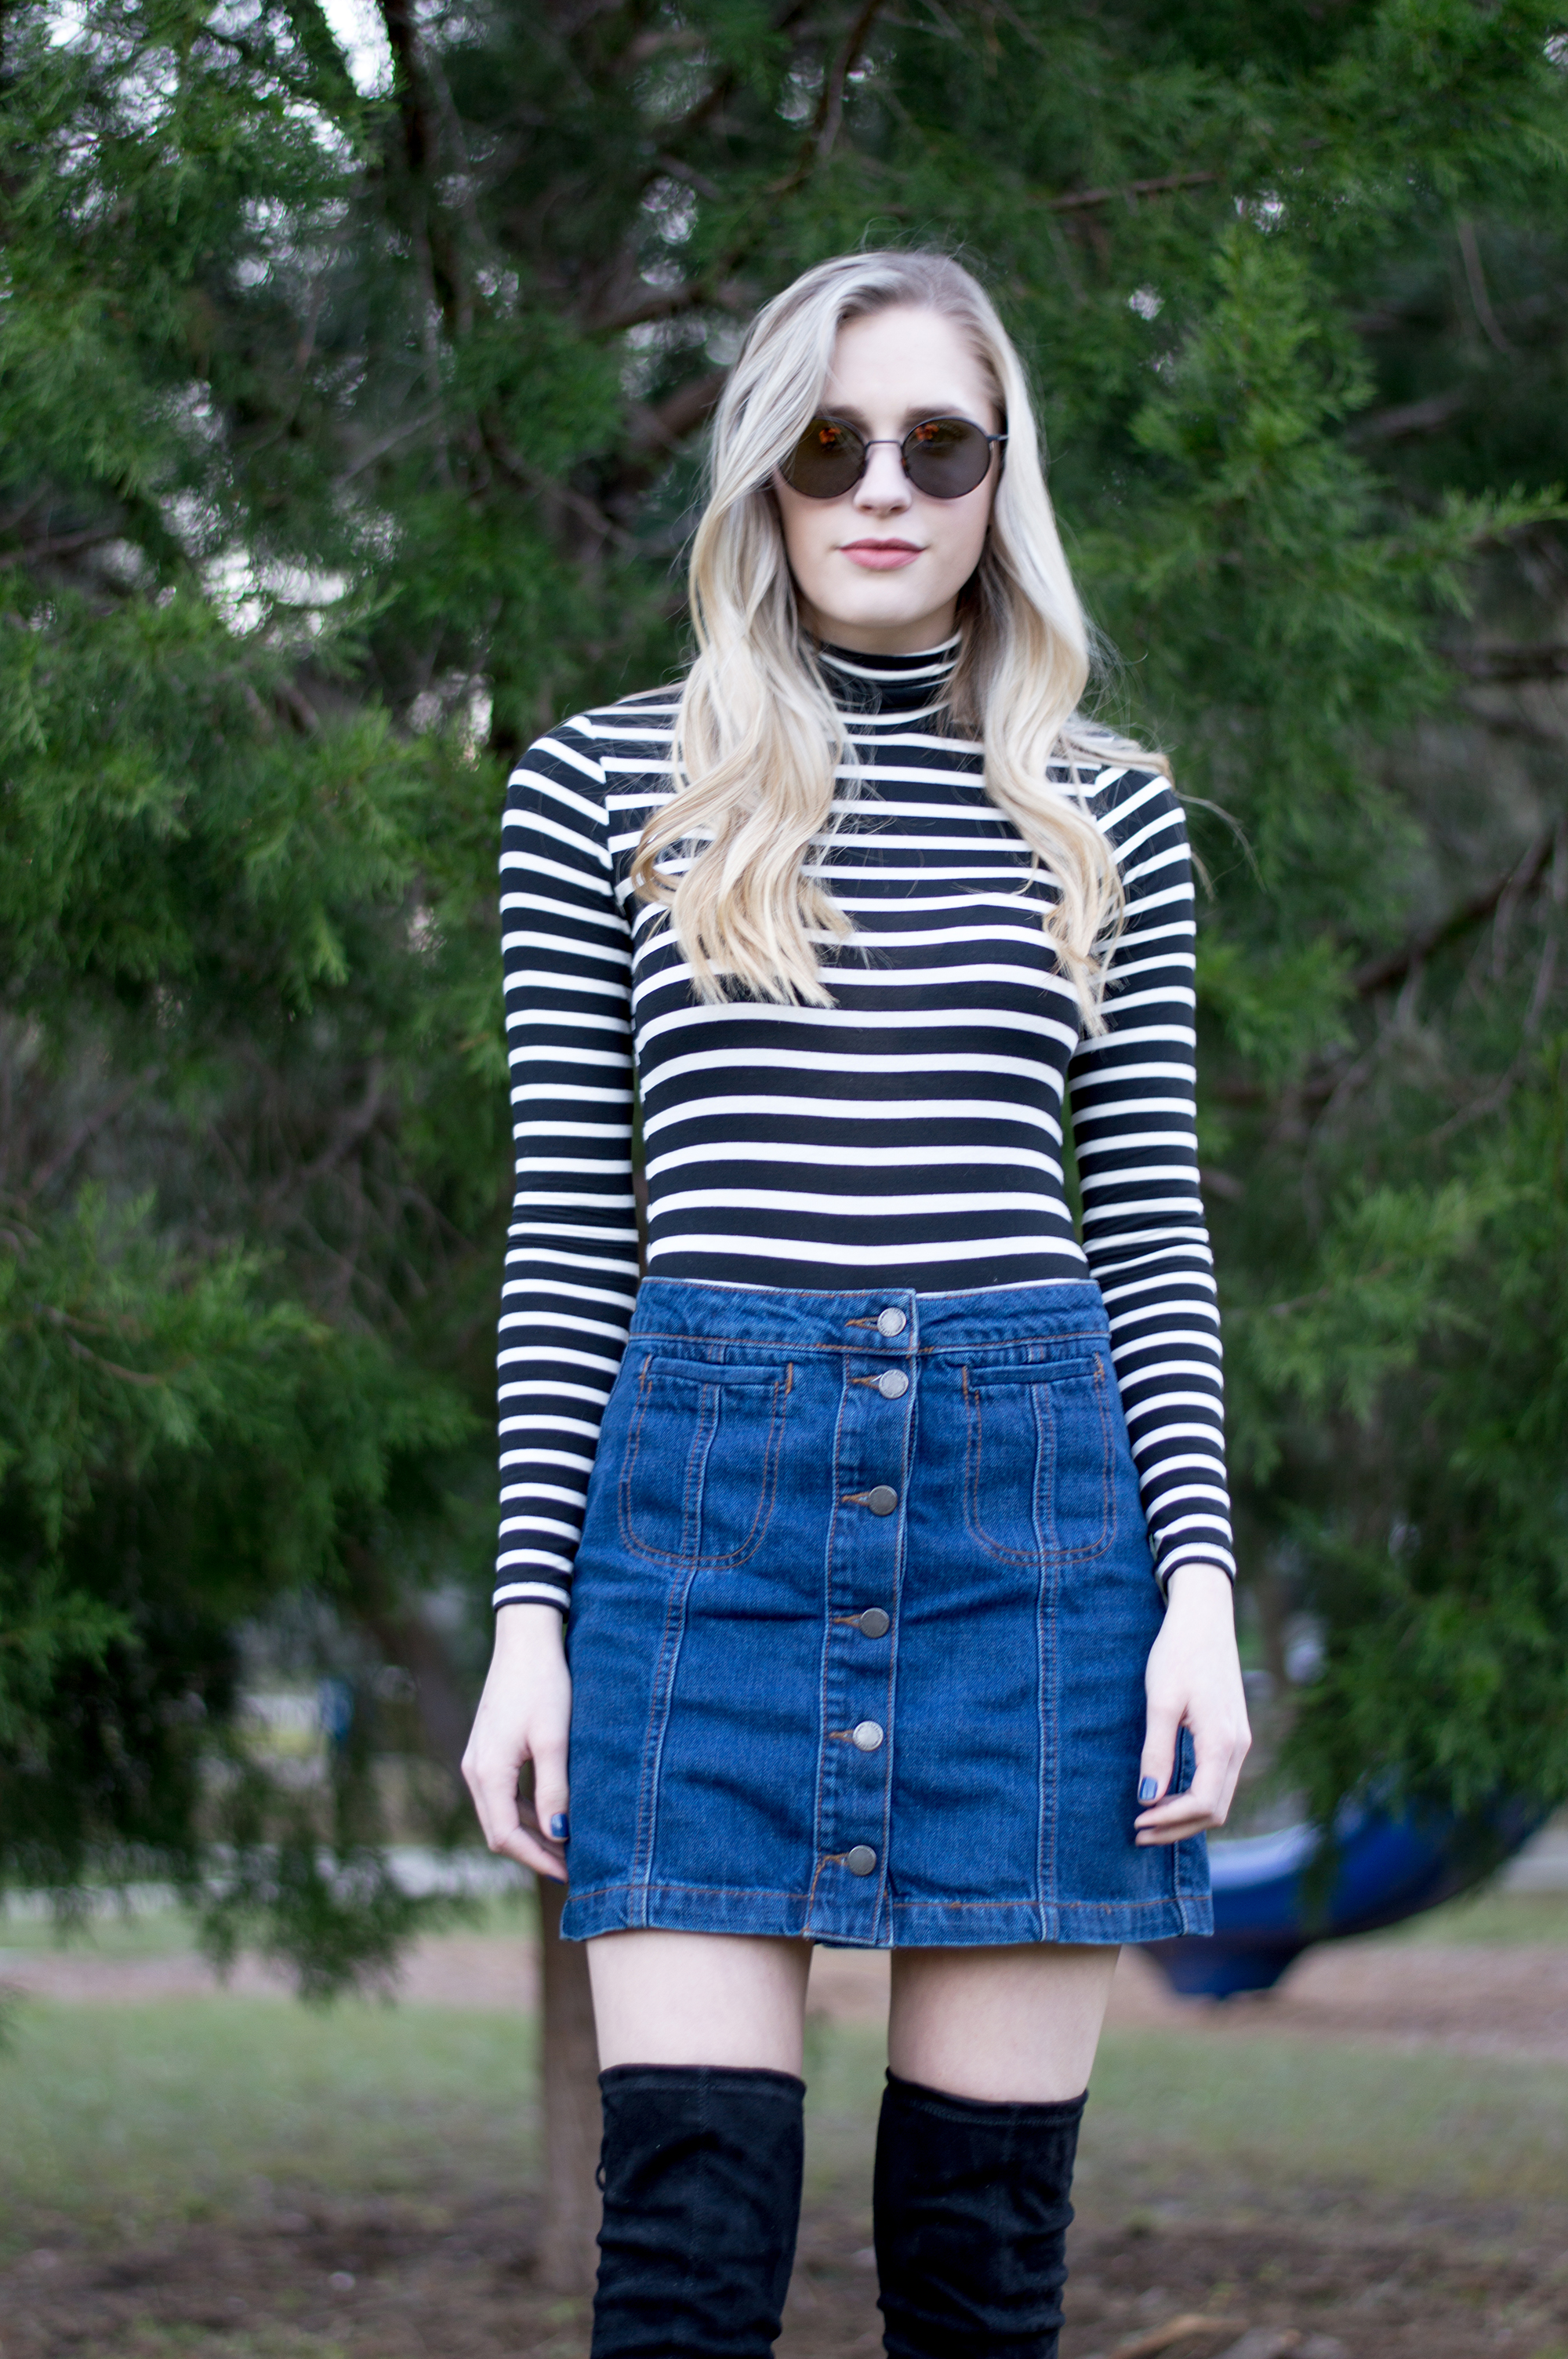 styelled_blog_fashion_lifestyle_beauty_style_blogger_topshop_forever_21_denim_skirt_striped_turtleneck_diff_eyewear_winter_style_fall_sweater_weather_over_the_knee_boots_07